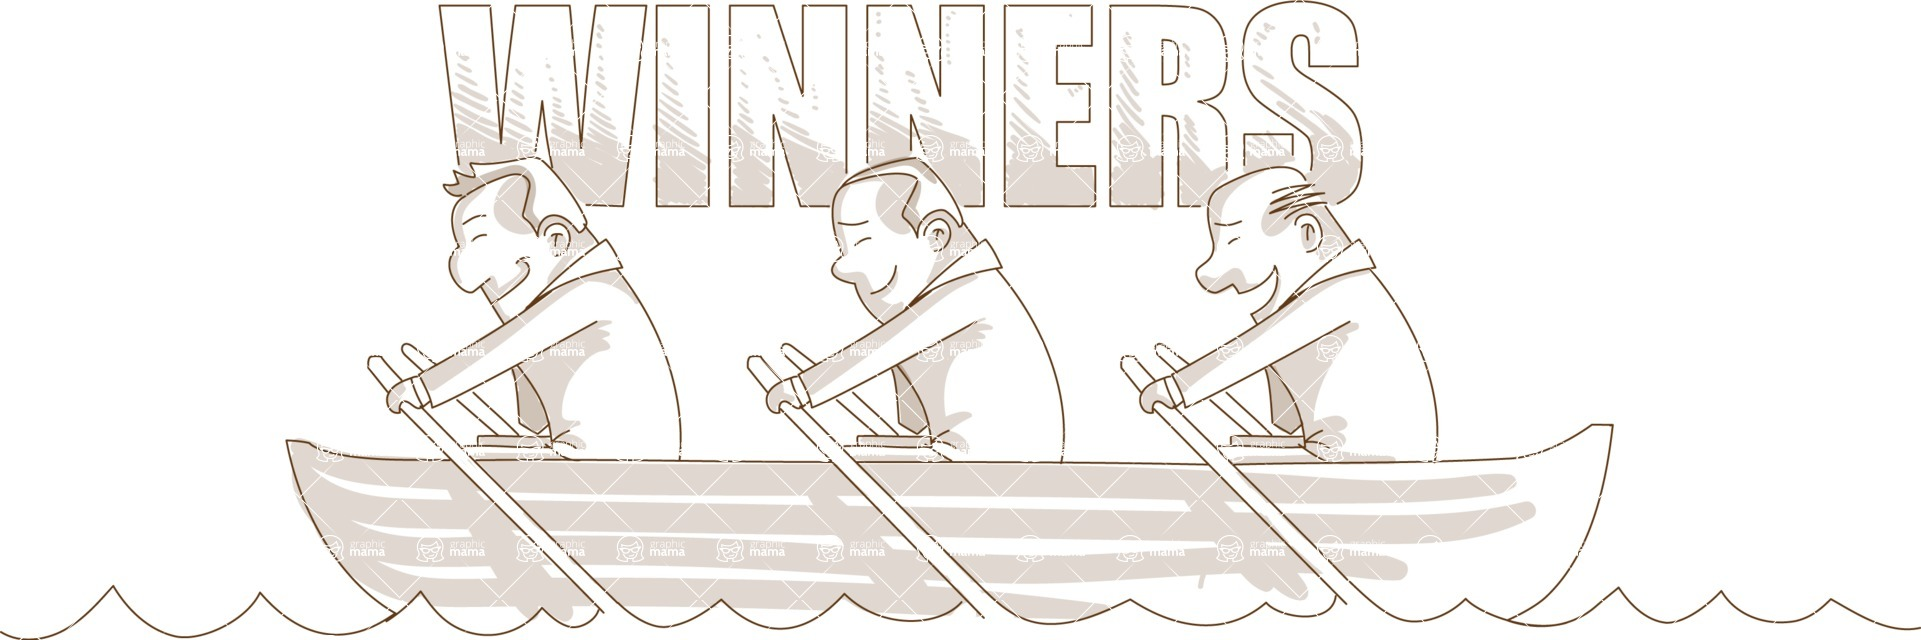 Business vector characters illustrated in the popular outline design trend - a rich collection from GraphicMama - Monochrome Businessmen Winners on Boat